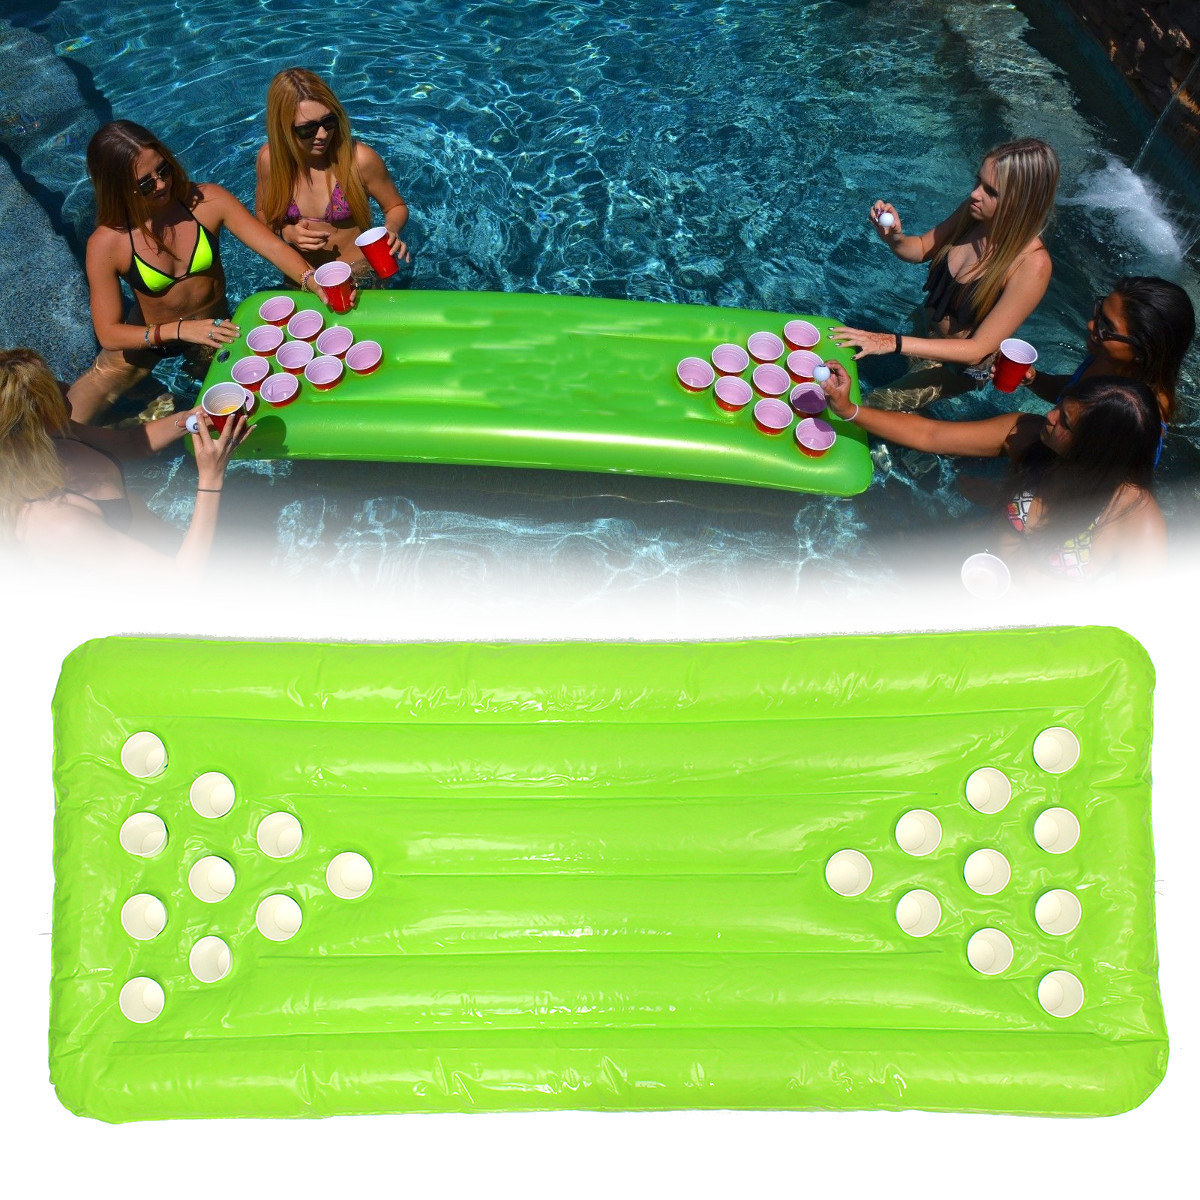 PVC Inflatable Beer Pong Table 22/20 Cup Holes Water Floating For Pool Party Drinking Game Inflatable Beer Pong Table